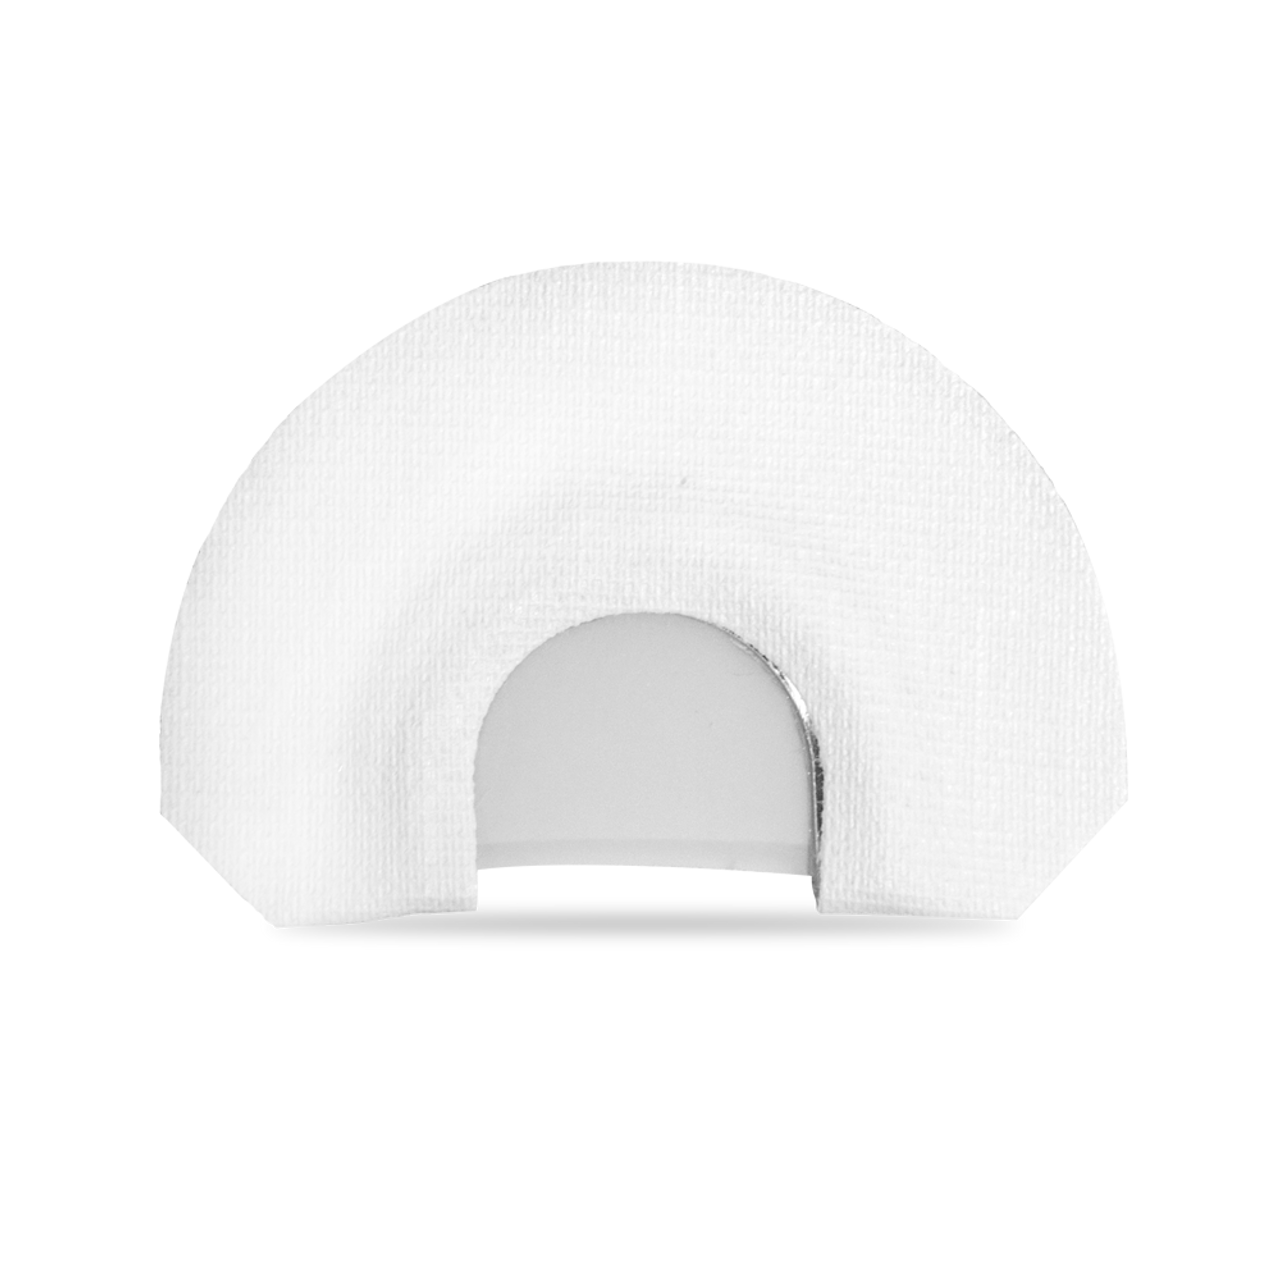 Loud Mouth: White tape with latex double reed, diaphragm/mouth call